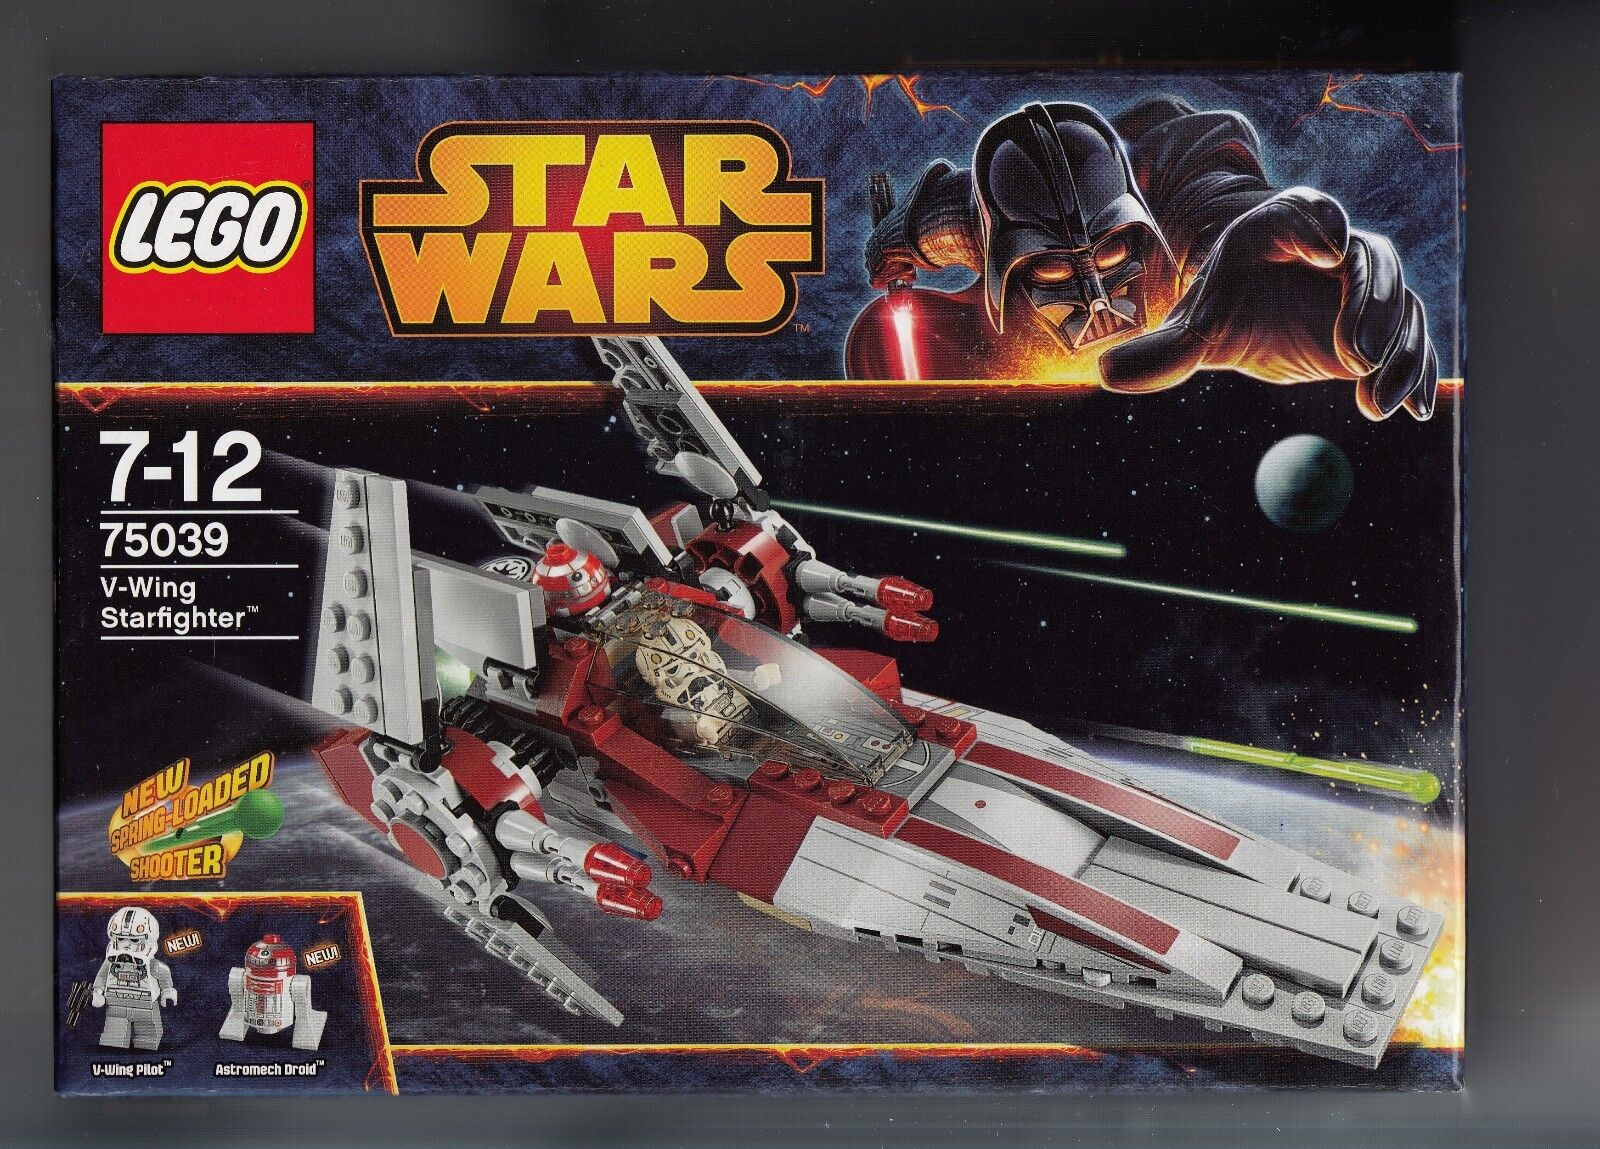 NEU OVP 75039 Lego Star Wars V-Wing Starfighter Astromech Droid  2 Figuren TOP